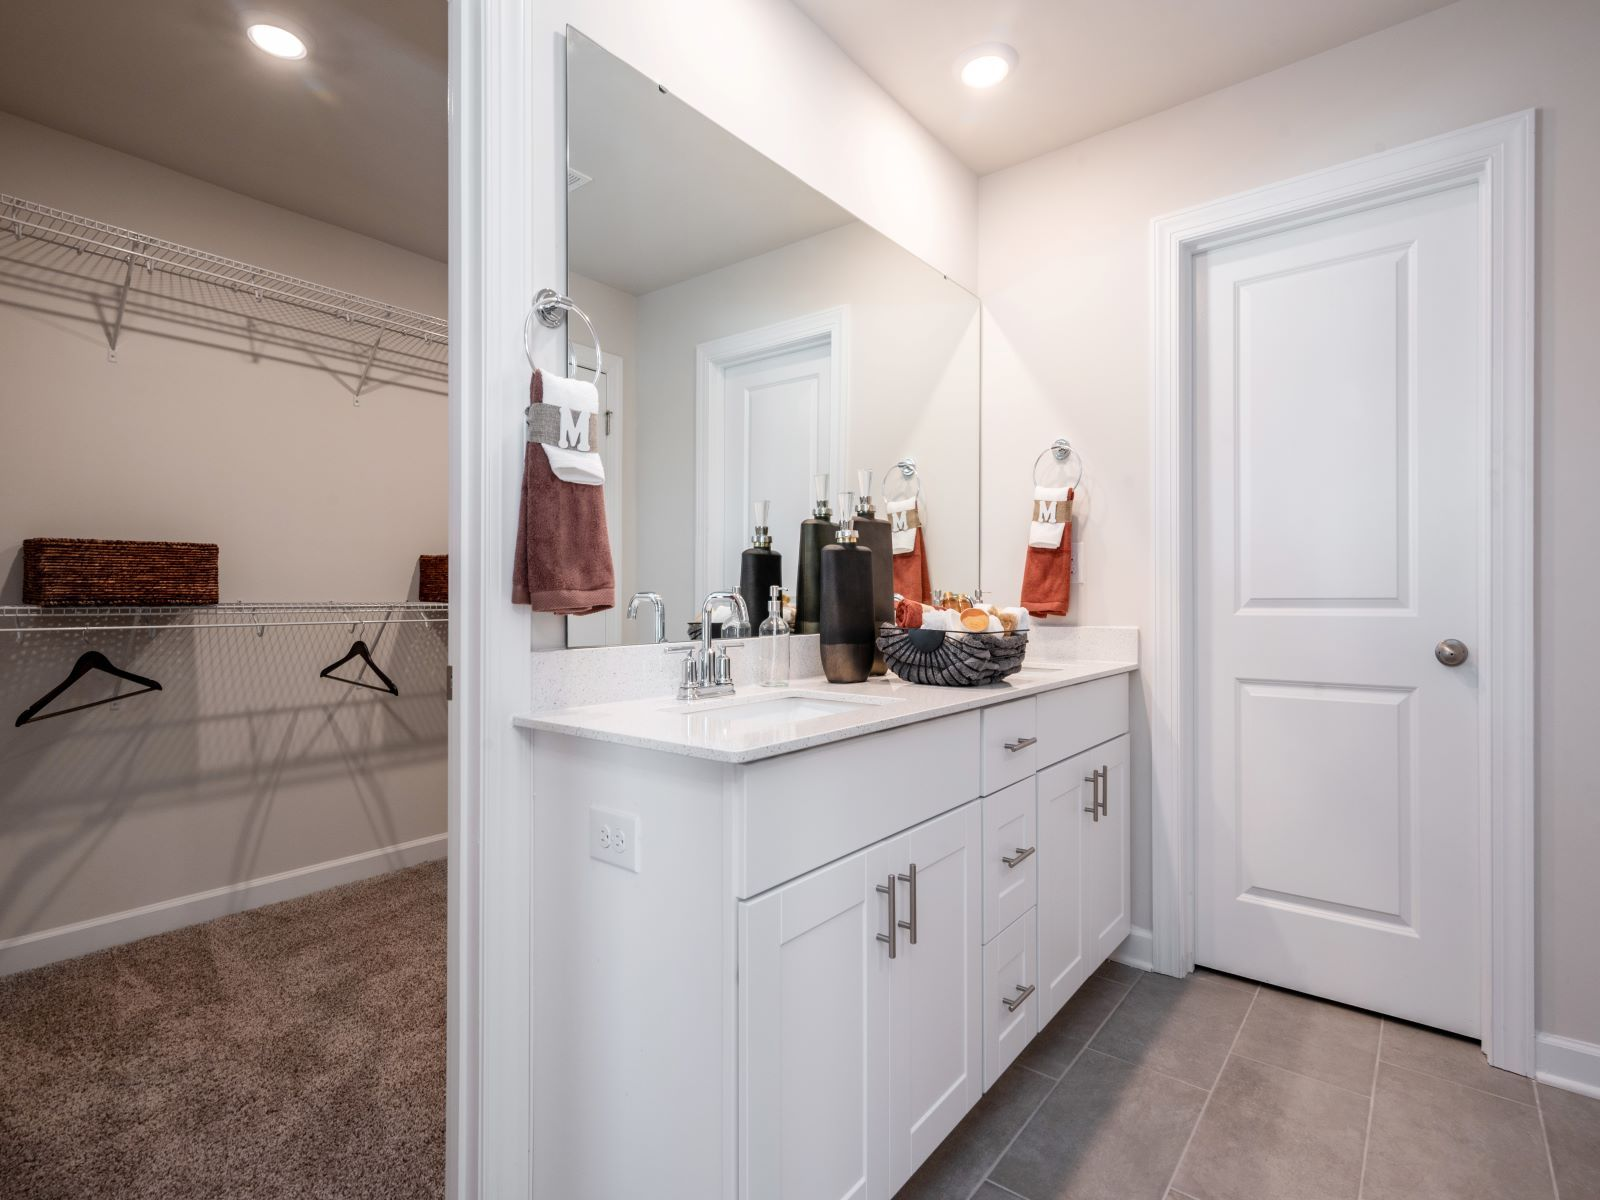 Bathroom featured in the Chastain Basement By Meritage Homes in Charlotte, NC